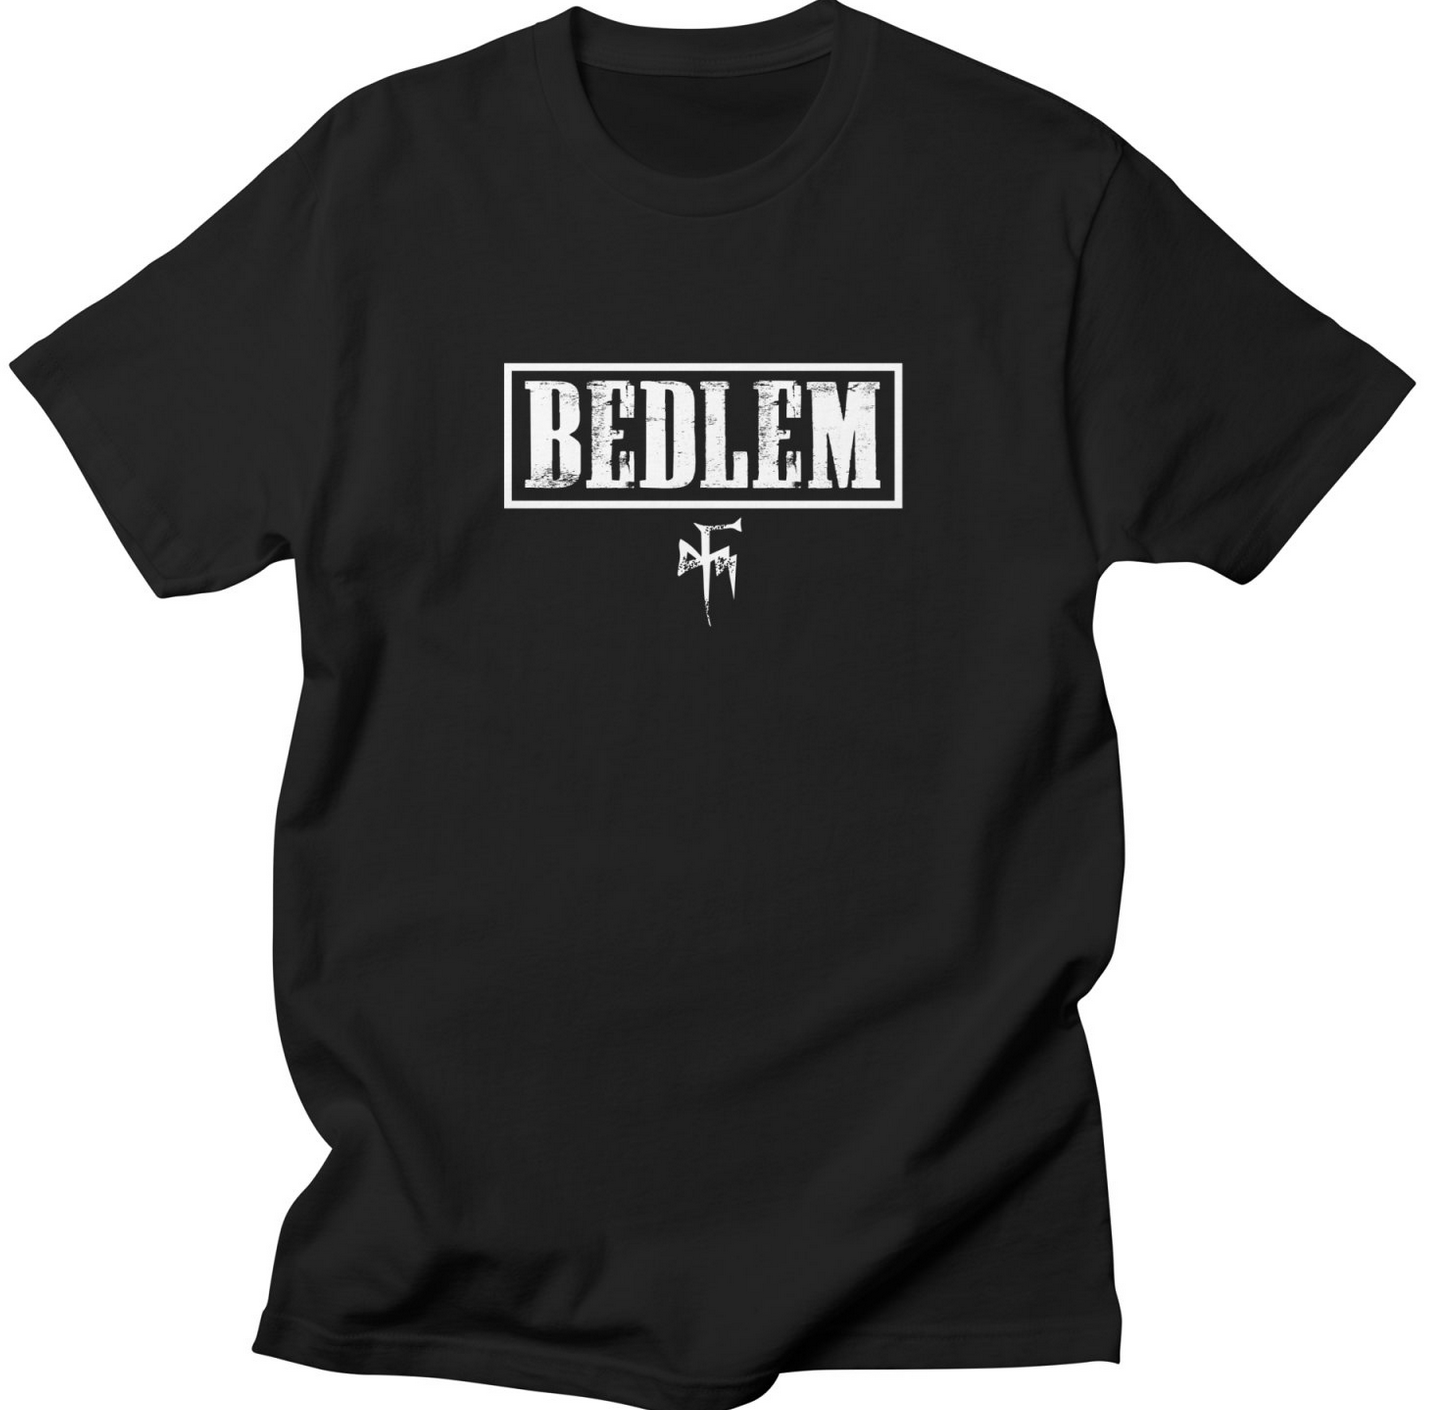 """Click here to order the """"WHITE BEDLEM LOGO"""" shirt and more"""